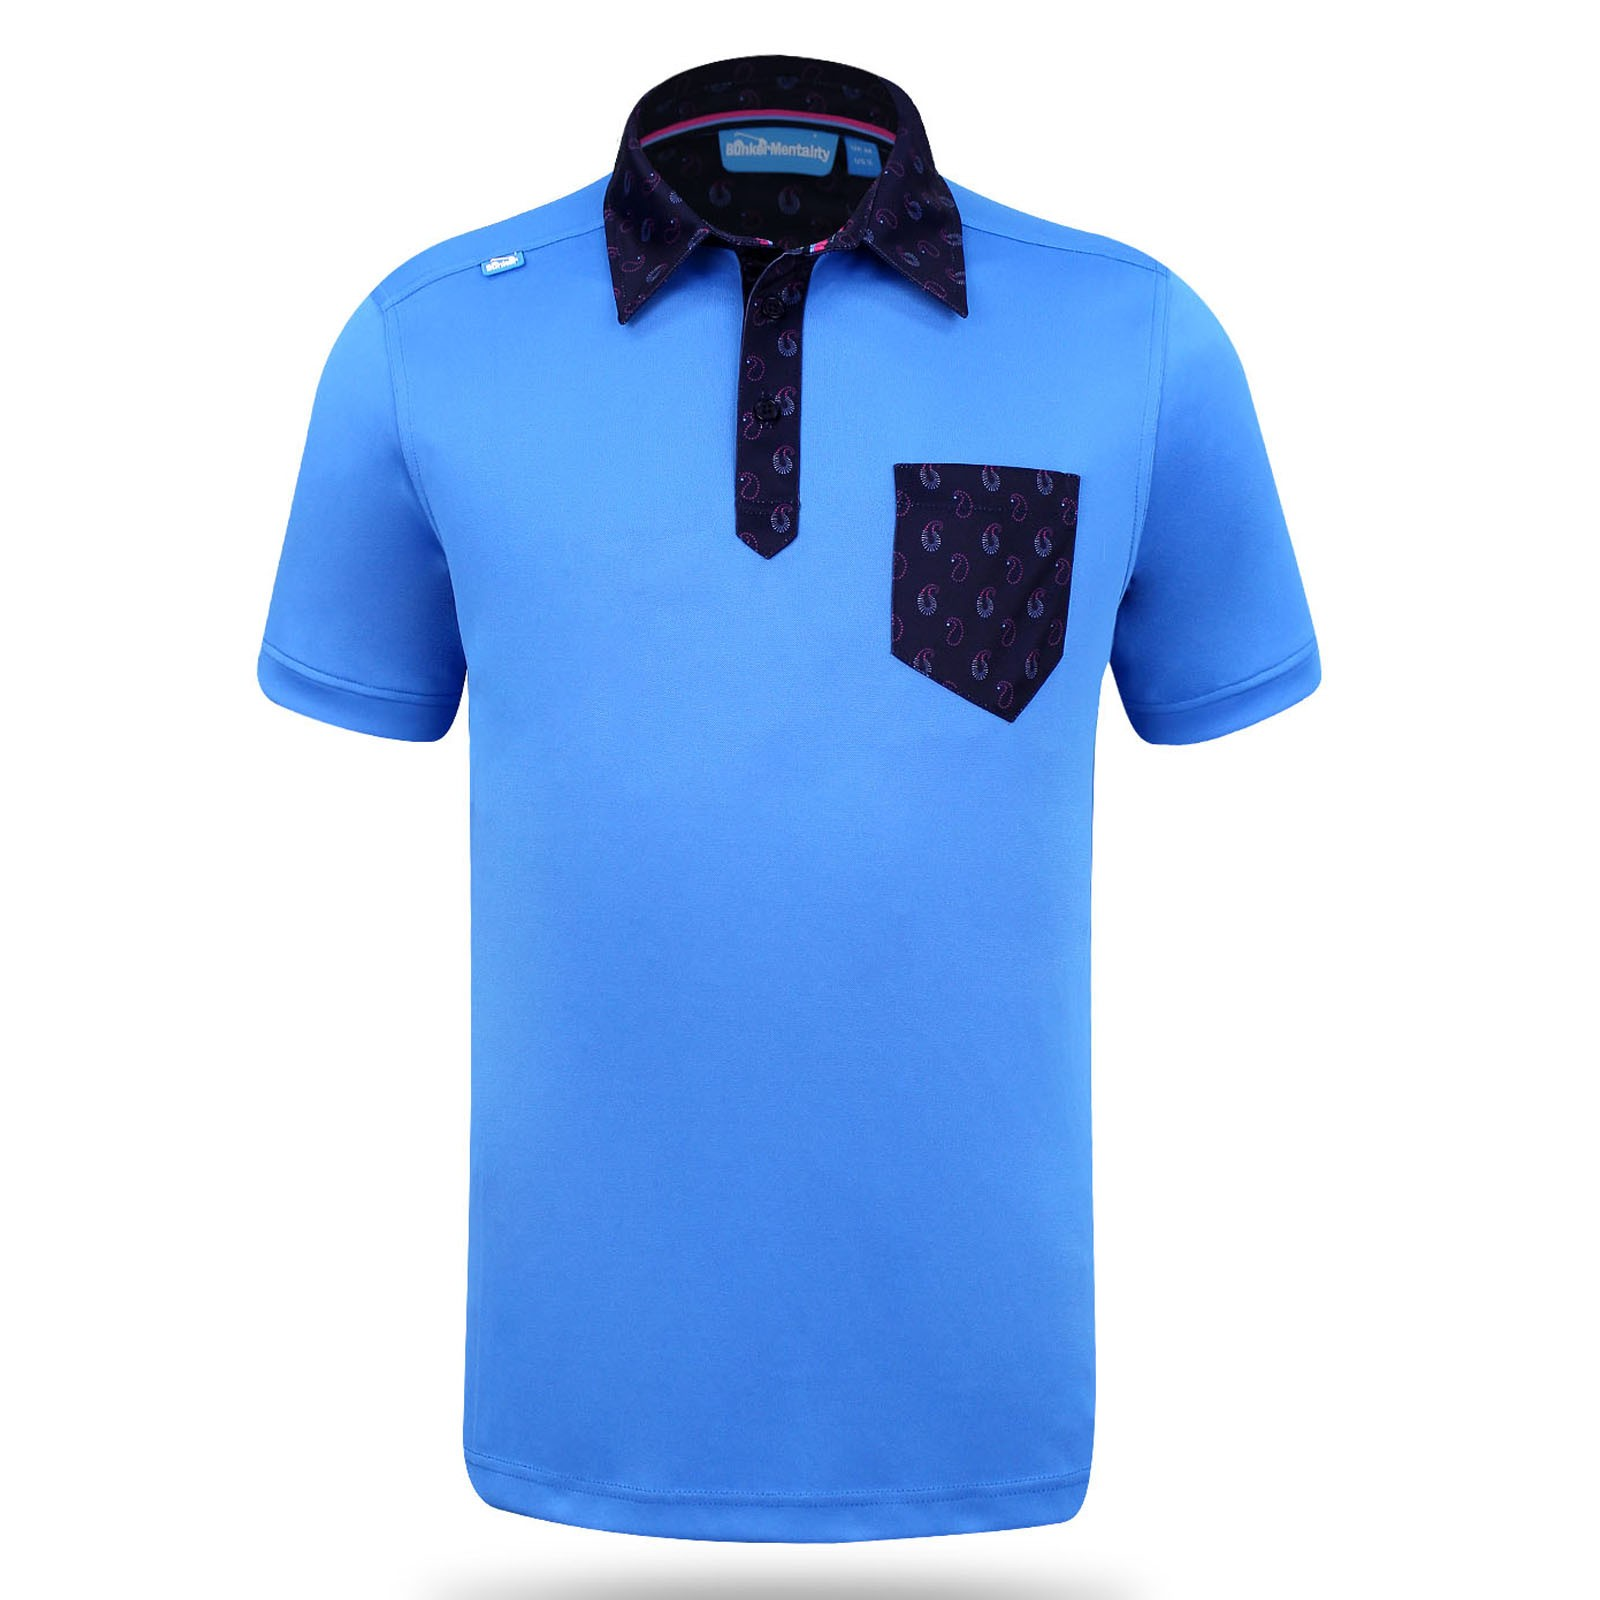 Bunker Mentality State Ombre Tech Polo